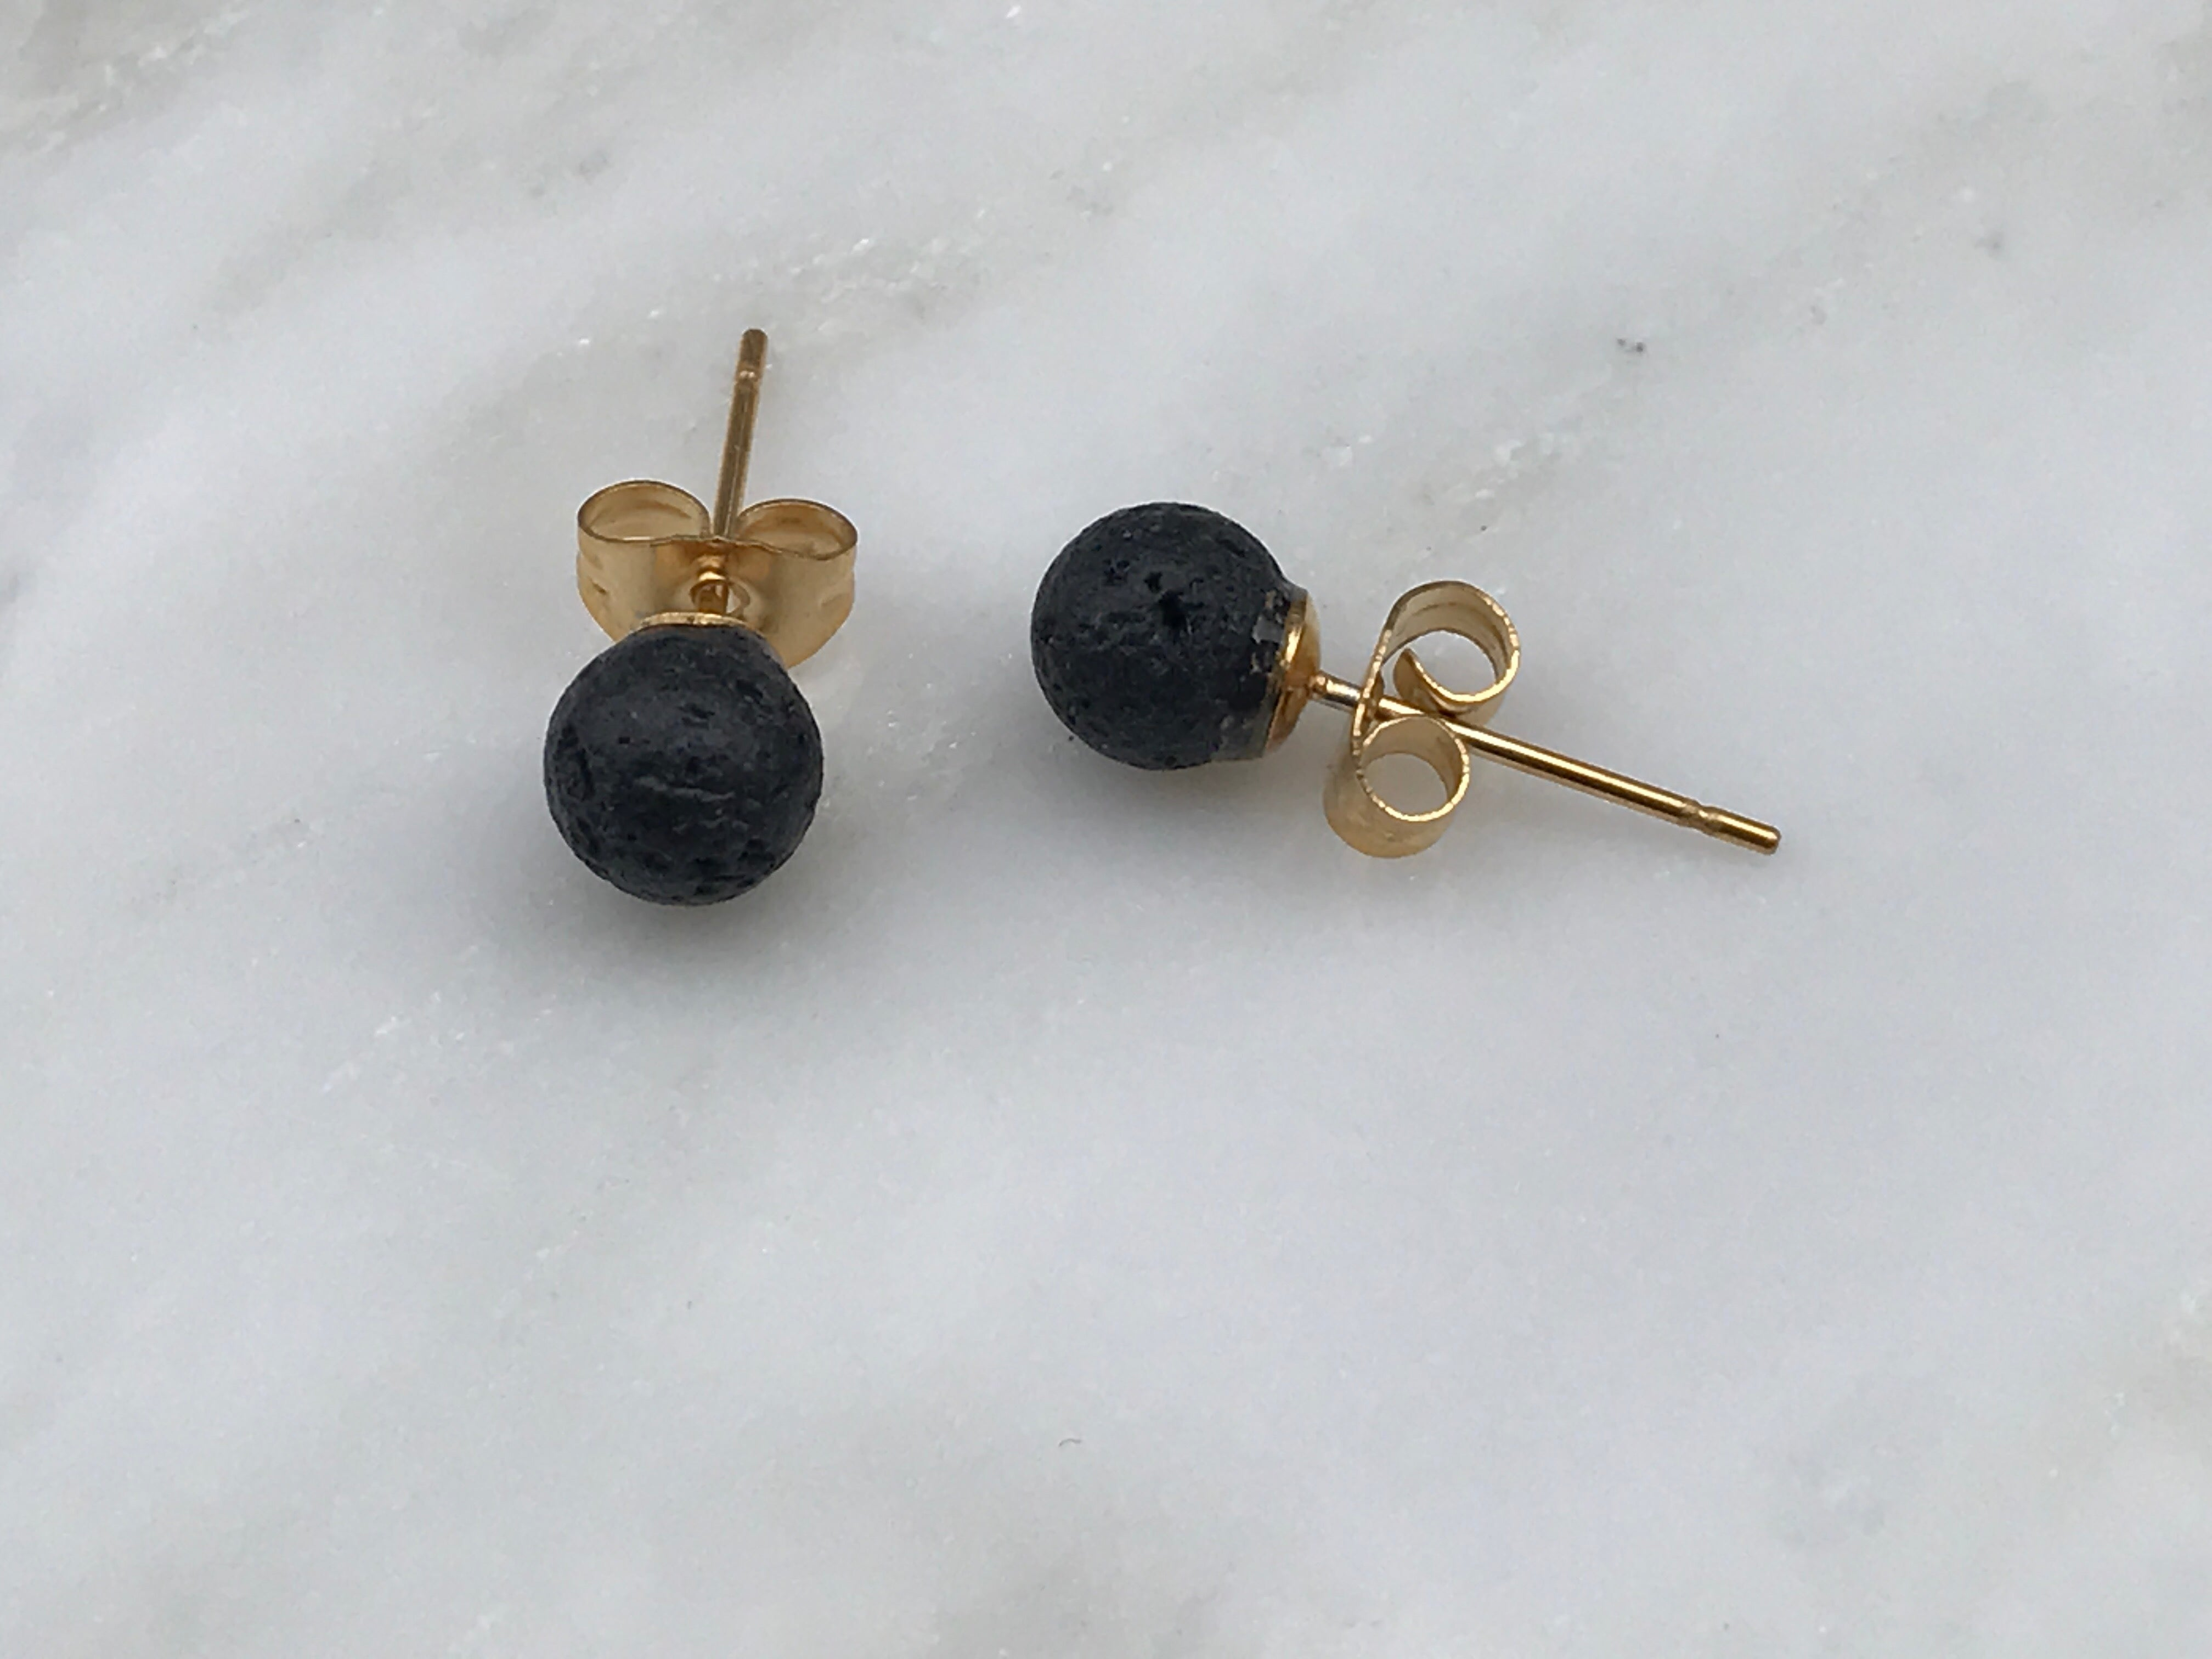 jewellery studs sloane citrine kiki grace earrings mcdonough product stud